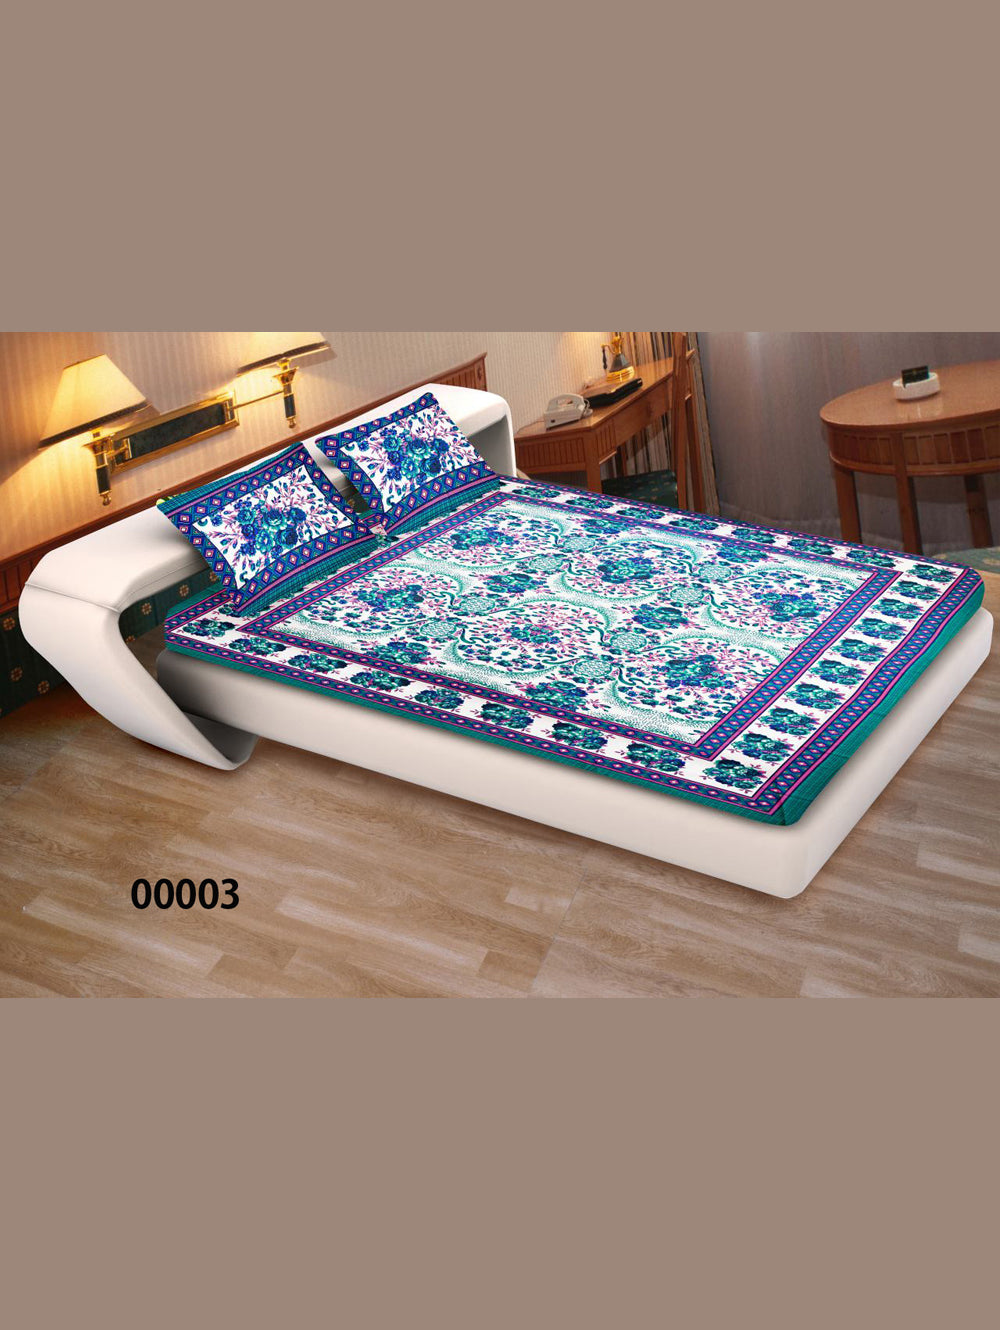 00003SeaGreen and Multicolour Ethnic Cotton Queen Size Floral Bedsheet With 2 Pillow Covers